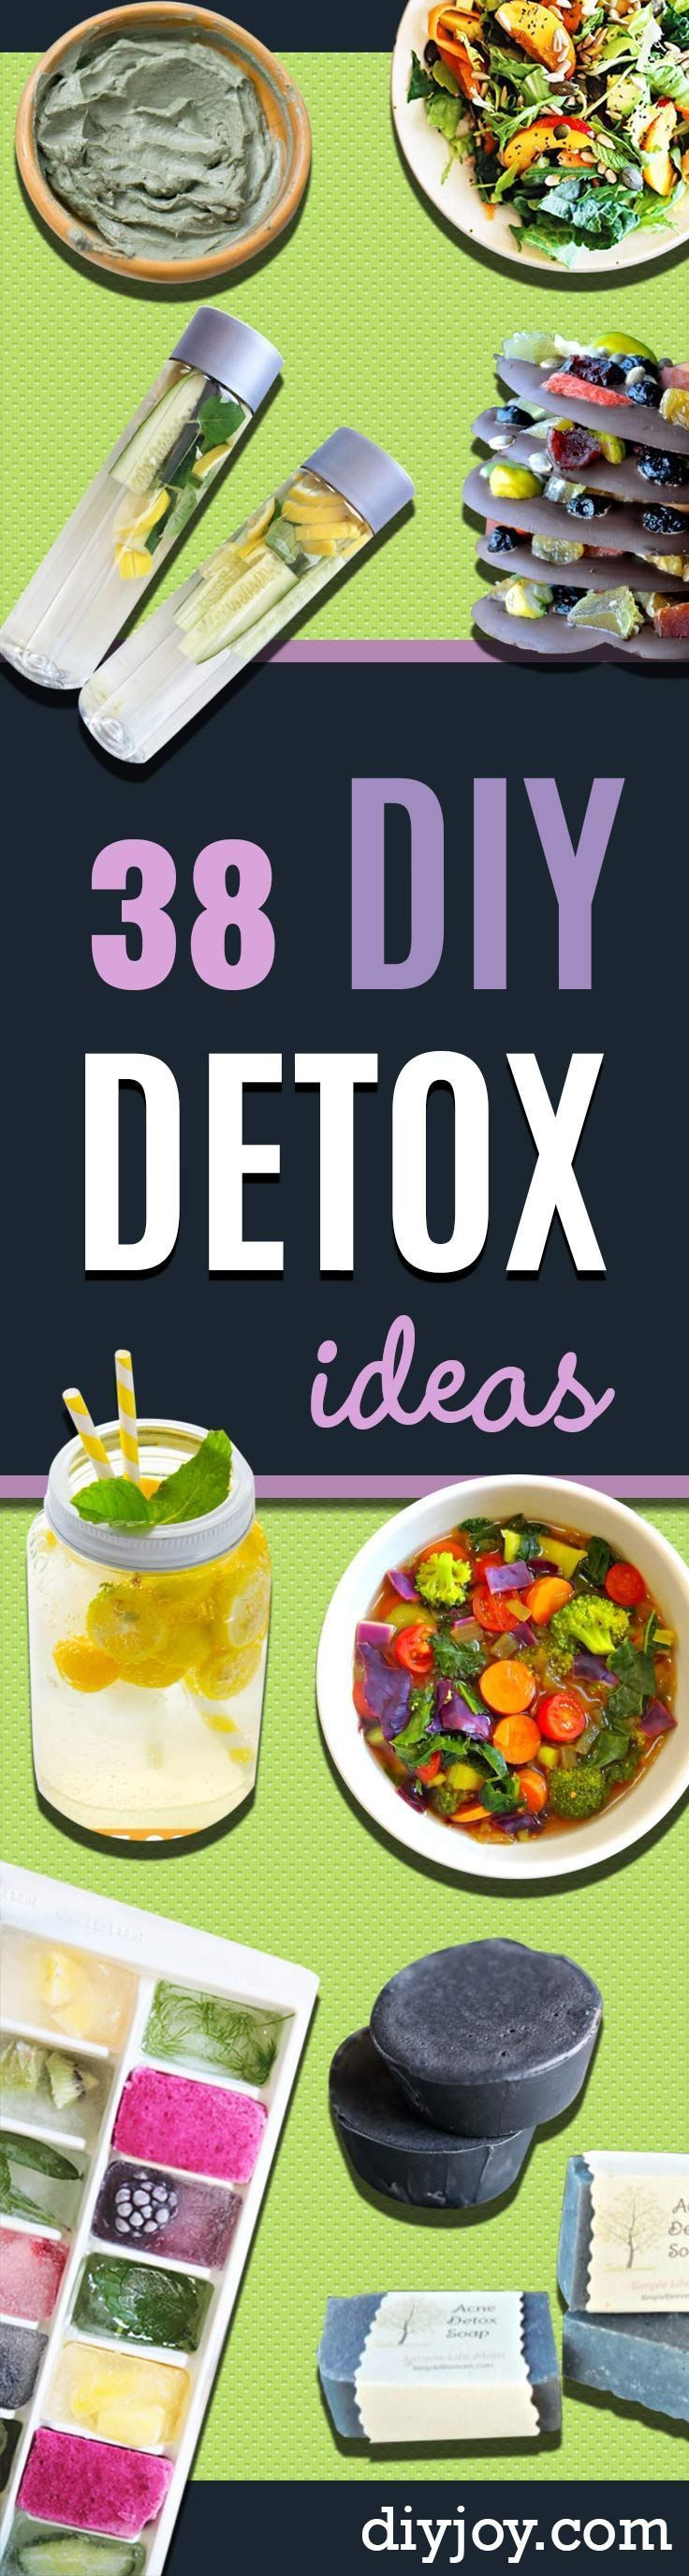 DIY Detox Recipes, Ideas and Tips - How to Detox Your Body, Brain and Skin for Health and Weight Loss. Detox Drinks, Waters, Teas, Wraps, Soup, Masks and Skincare Products You Can Make At Home http://diyjoy.com/diy-detox-ideas #HomeBodyCleanseDetox